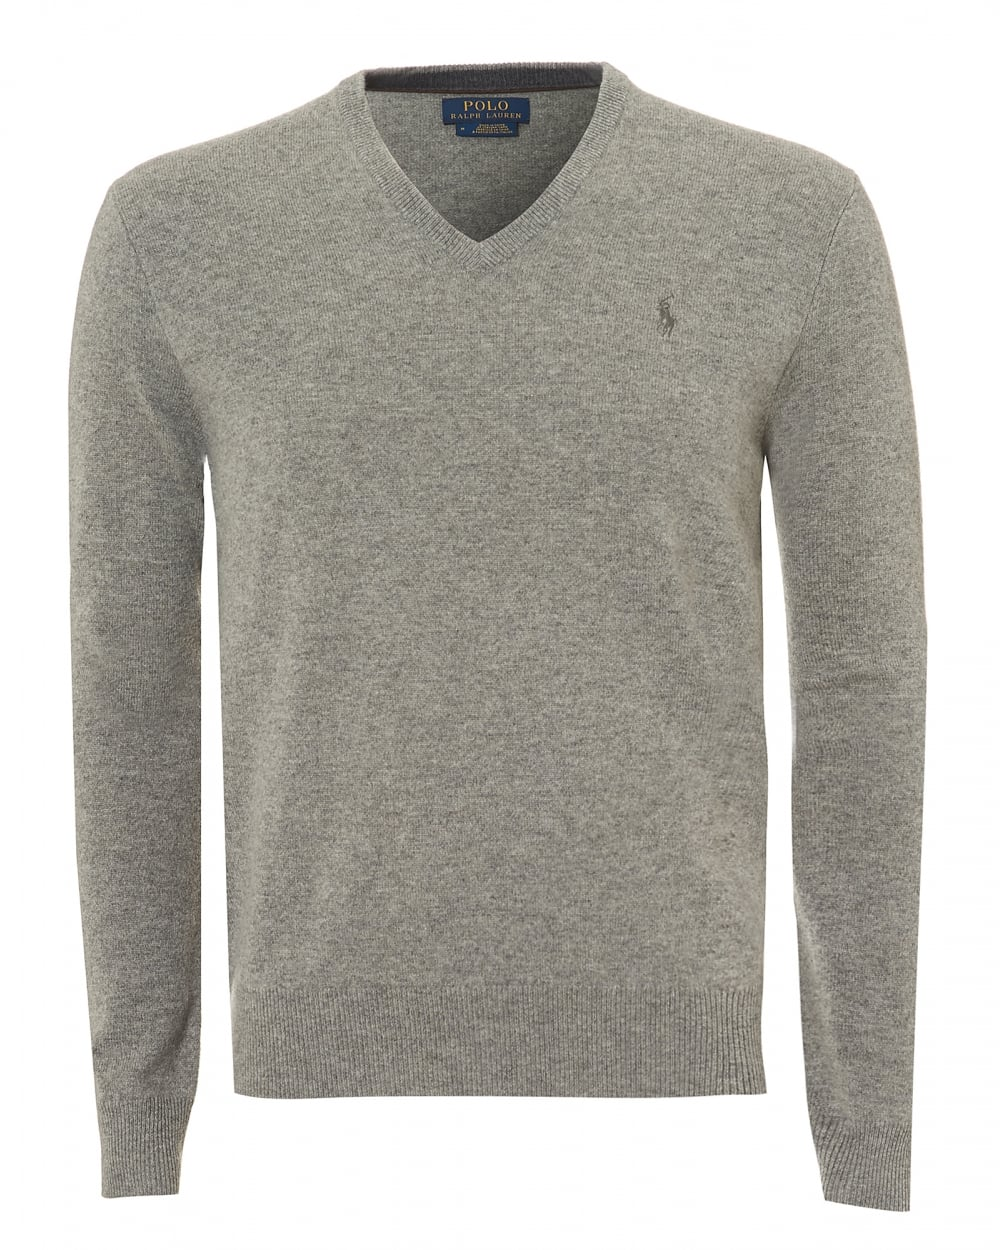 7cc91985b4 Mens V-Neck Knit Jumper, Oatmeal Grey Lambswool Sweater